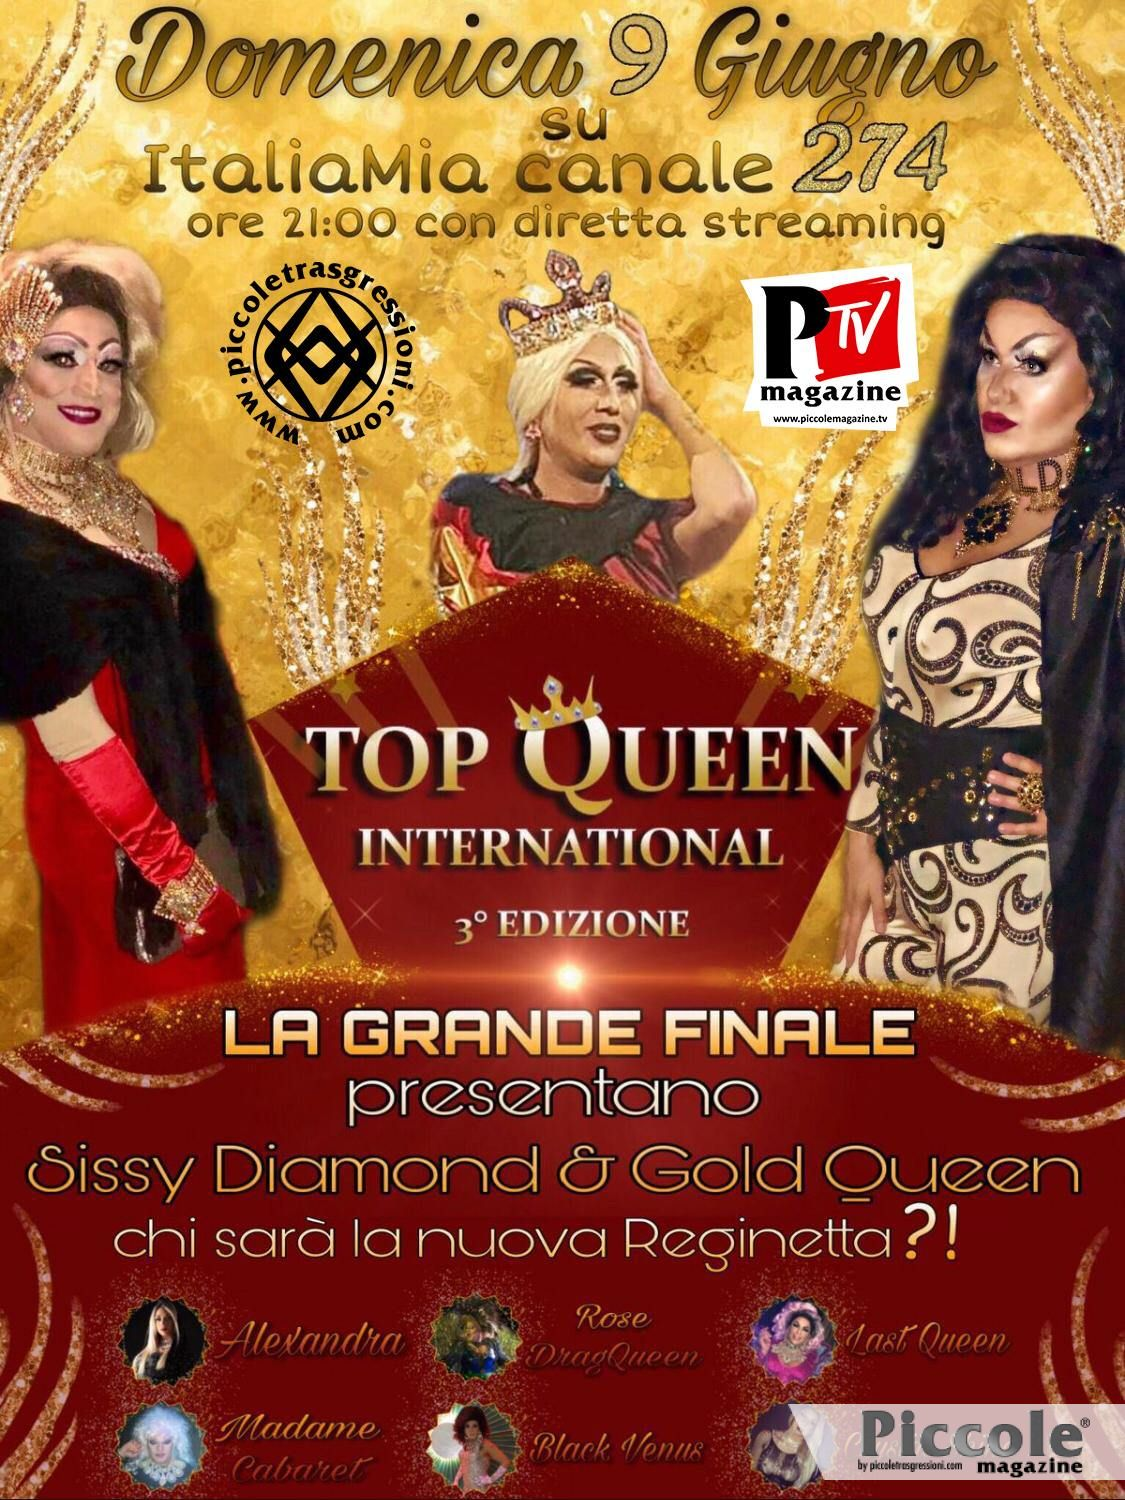 Gold Queen ci aspetta a Top Queen International!